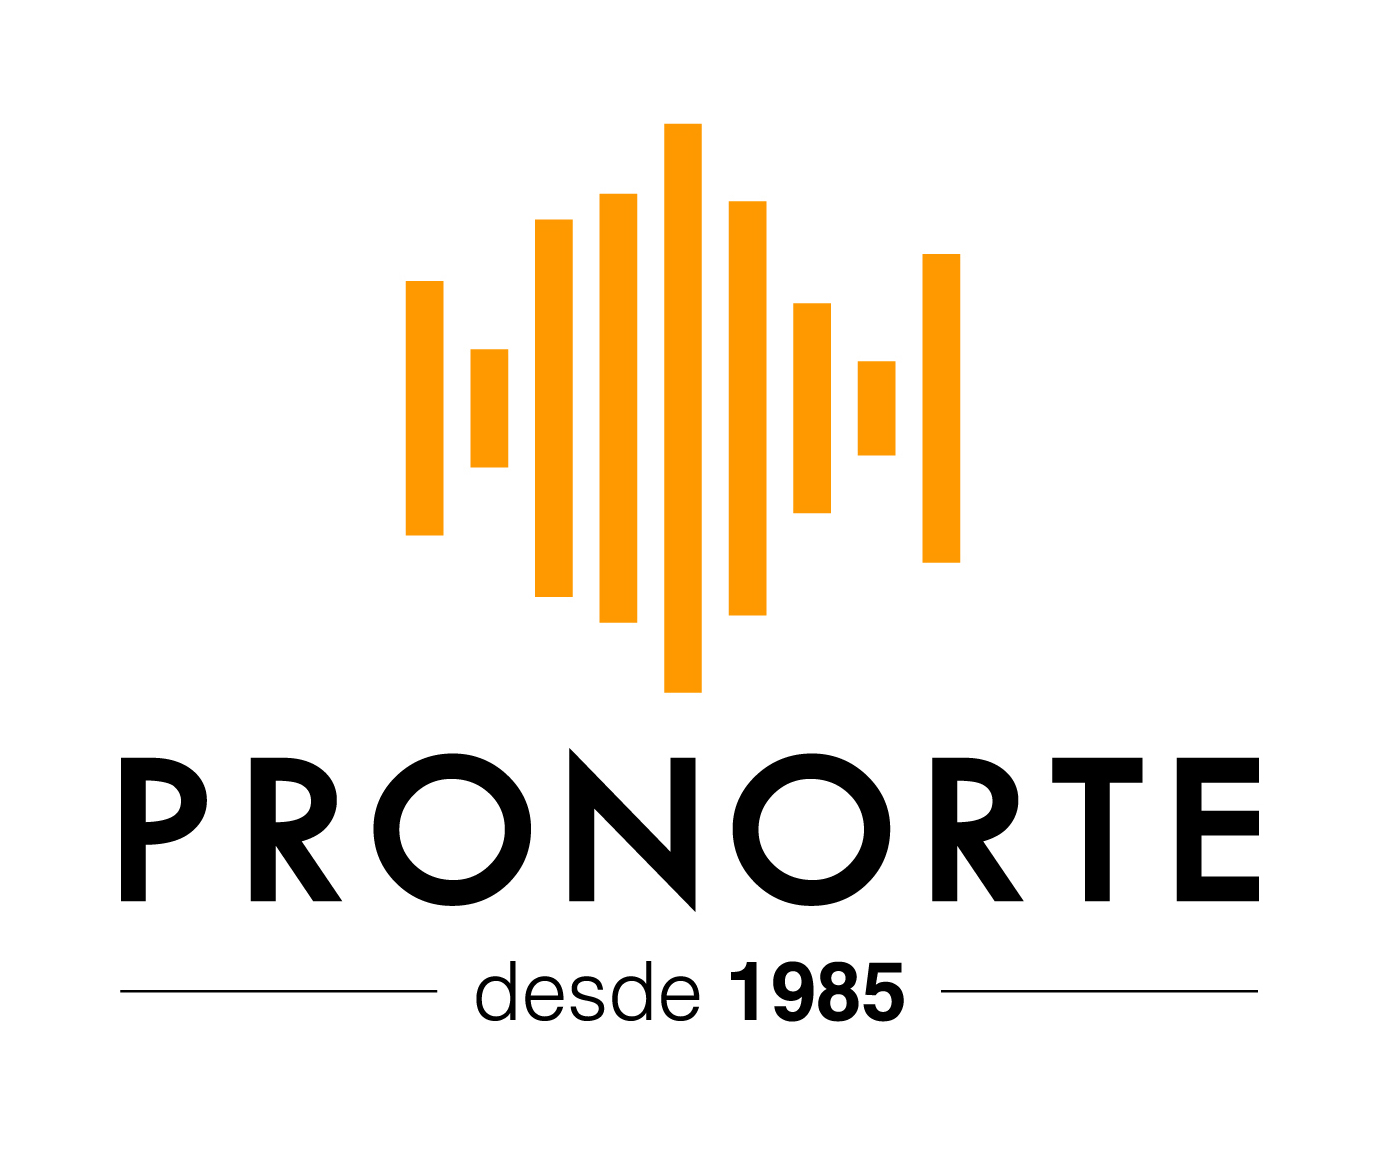 Pronorte Sound